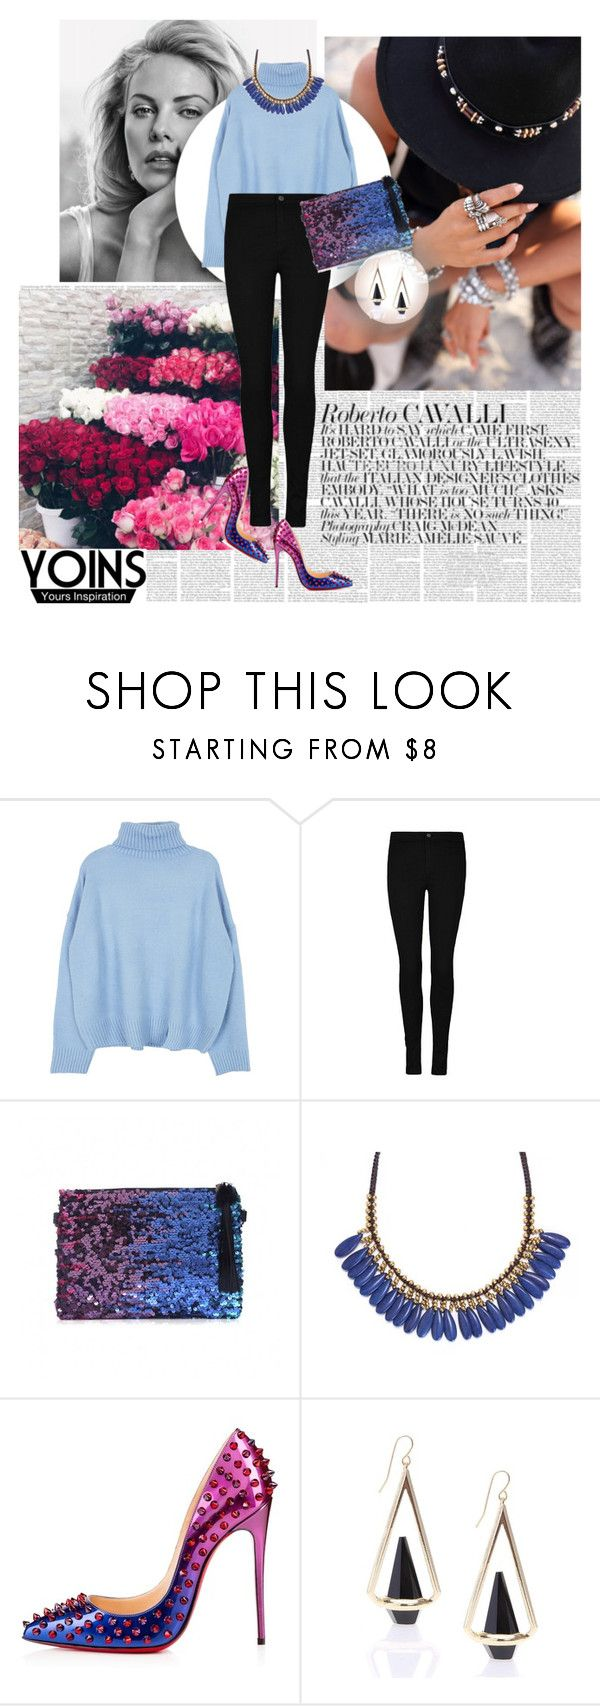 """Yoins 8/1"" by worldoffashionr ❤ liked on Polyvore featuring Roni Kantor, Christian Louboutin, women's clothing, women's fashion, women, female, woman, misses, juniors and yoins"